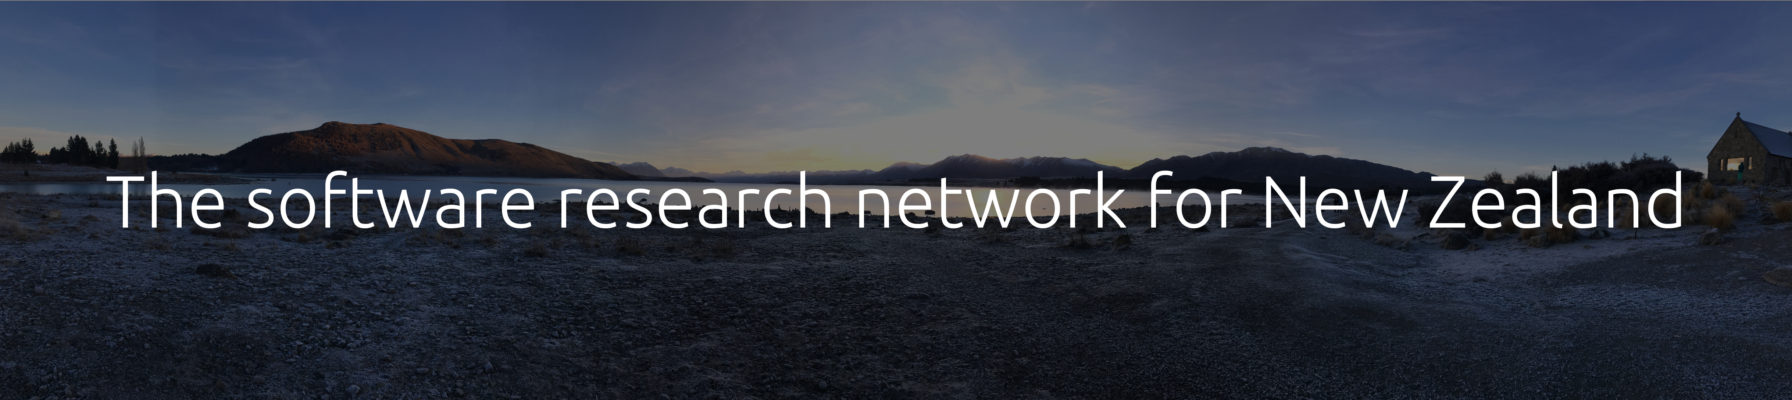 The software research network for New Zealand